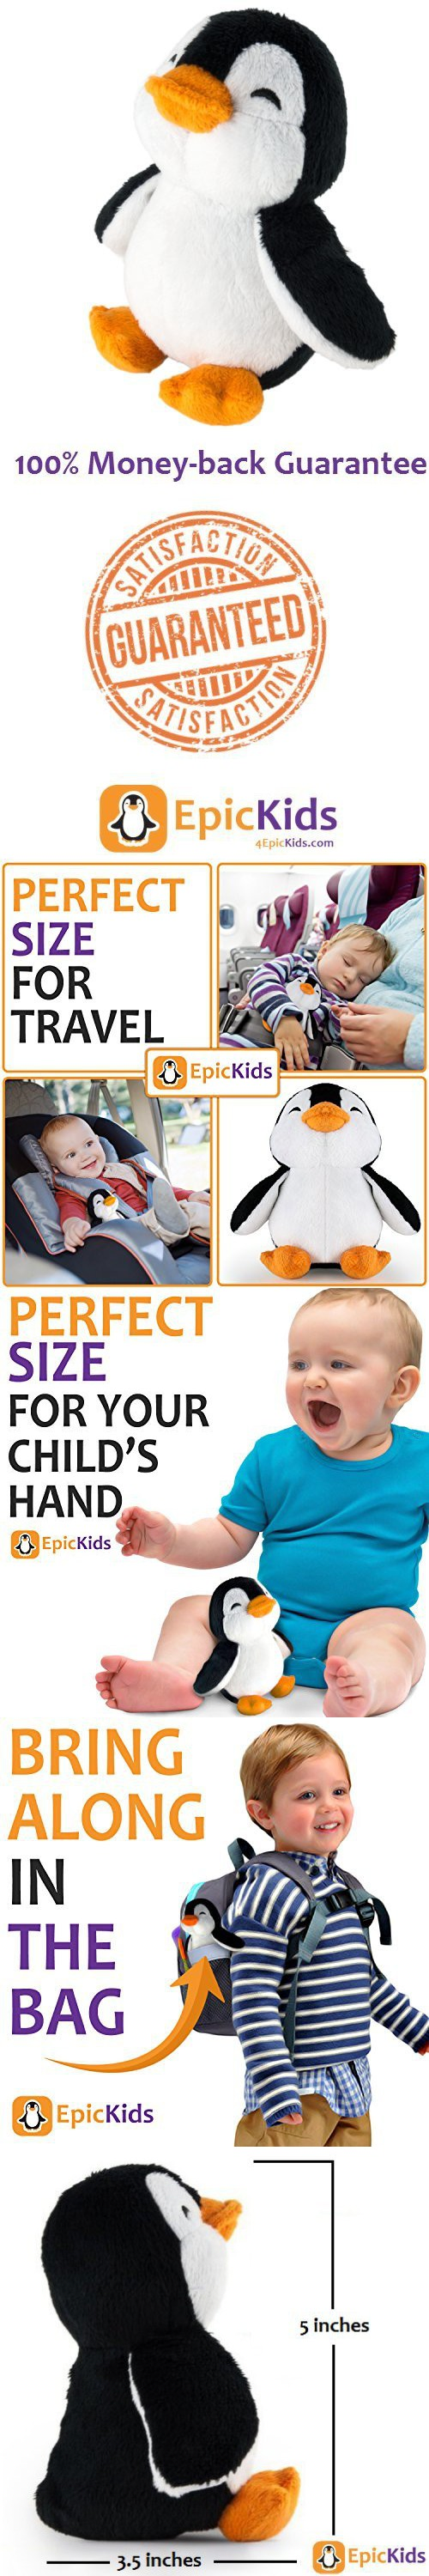 Stuffed Penguin - Plush Animal Thats Suitable For Babies and Children - 5 Inch Tall - By EpicKids